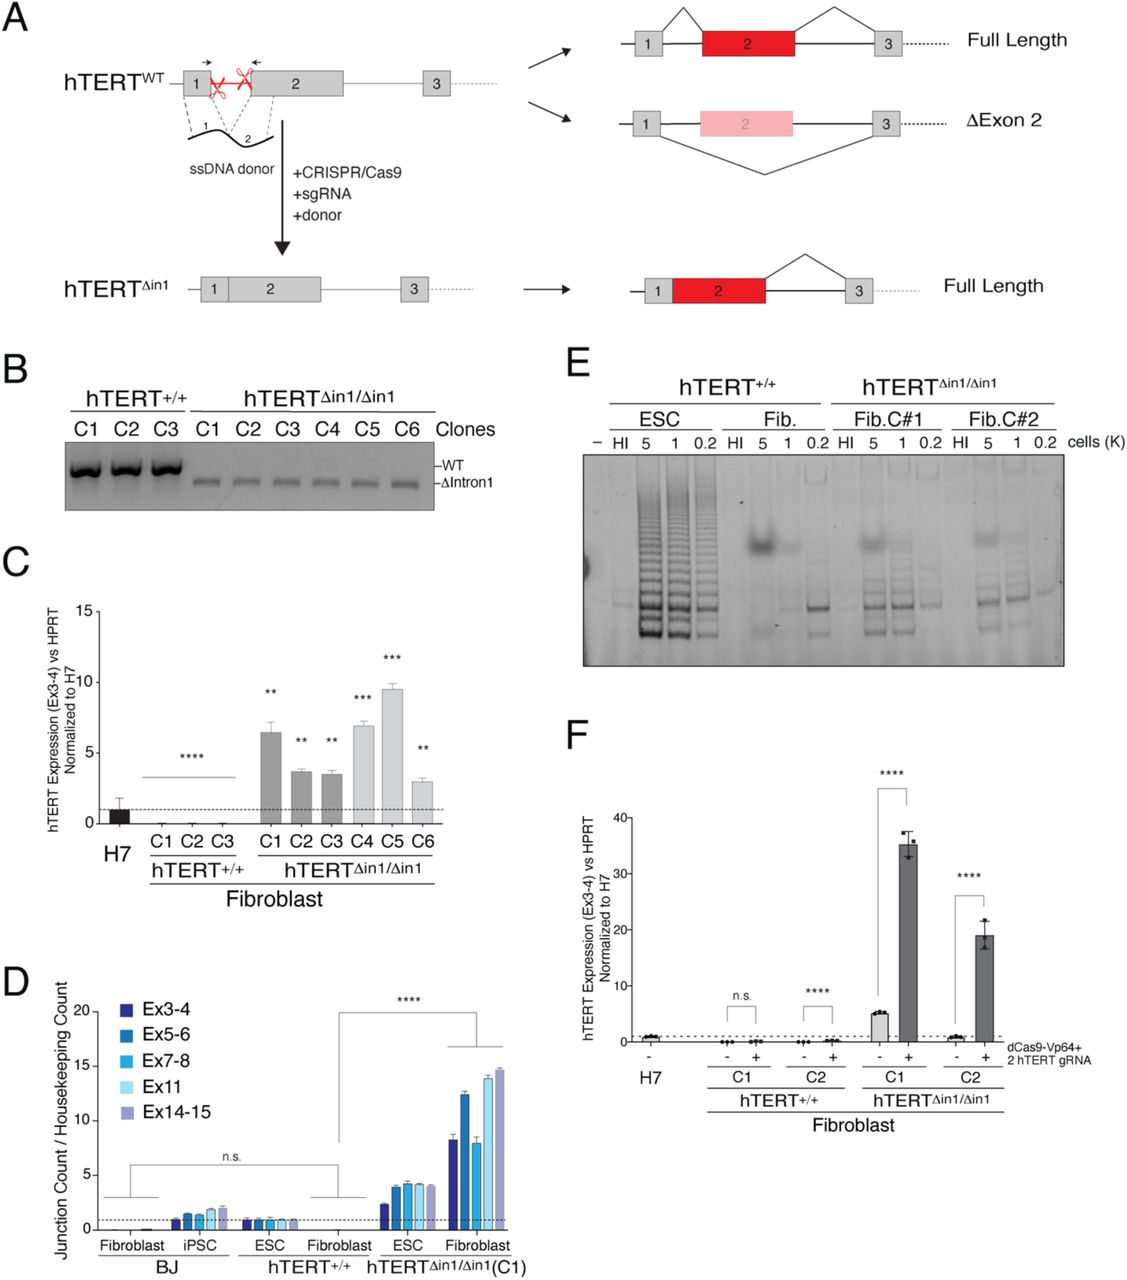 Forced retention of exon-2 abolishes silencing of hTERT upon differentiation. A) Schematic illustration of intron 1 deletion by CRISPR/Cas9 gene editing and the predicted splicing pattern. Cells were co-transfected with two sgRNA that cleave within hTERT intron-1 and a 200bp single-stranded (ss) DNA donor containing 100bp sequence from exon-1 and exon-2 directly concatenated. B) Genotyping PCR from cells with the indicated genotype. PCR products: wild type, 584bp; Δintron1, 480bp C) Quantitative RT-PCR for hTERT mRNA in cells with the indicated genotype. hTERT expression is silenced in fibroblasts derived from wildtype ESC clones, whereas hTERT levels remain elevated upon differentiation of hTERT Δin1/Δin1 ESCs. Values are normalized to hTERT +/+ H7 ESC (n=3, **: p